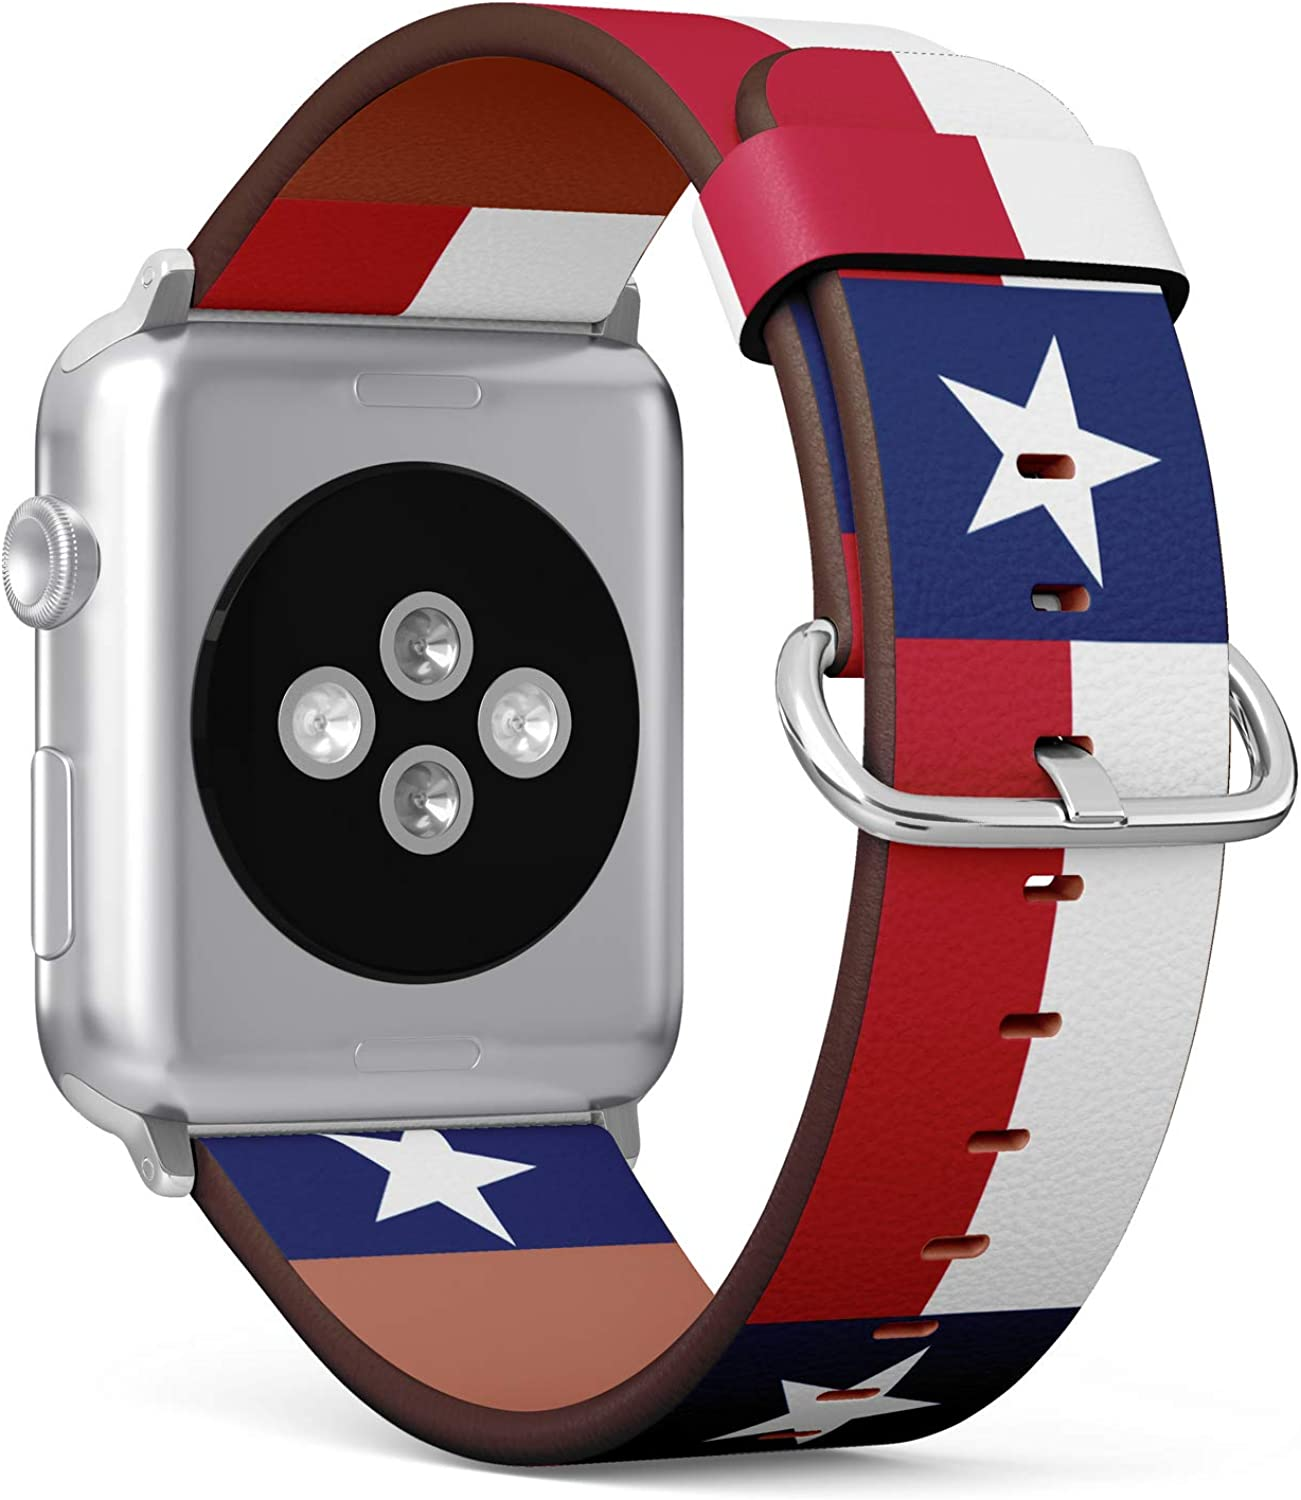 (State Flag of Texas) Patterned Leather Wristband Strap for Apple Watch Series 4/3/2/1 gen,Replacement for iWatch 42mm / 44mm Bands